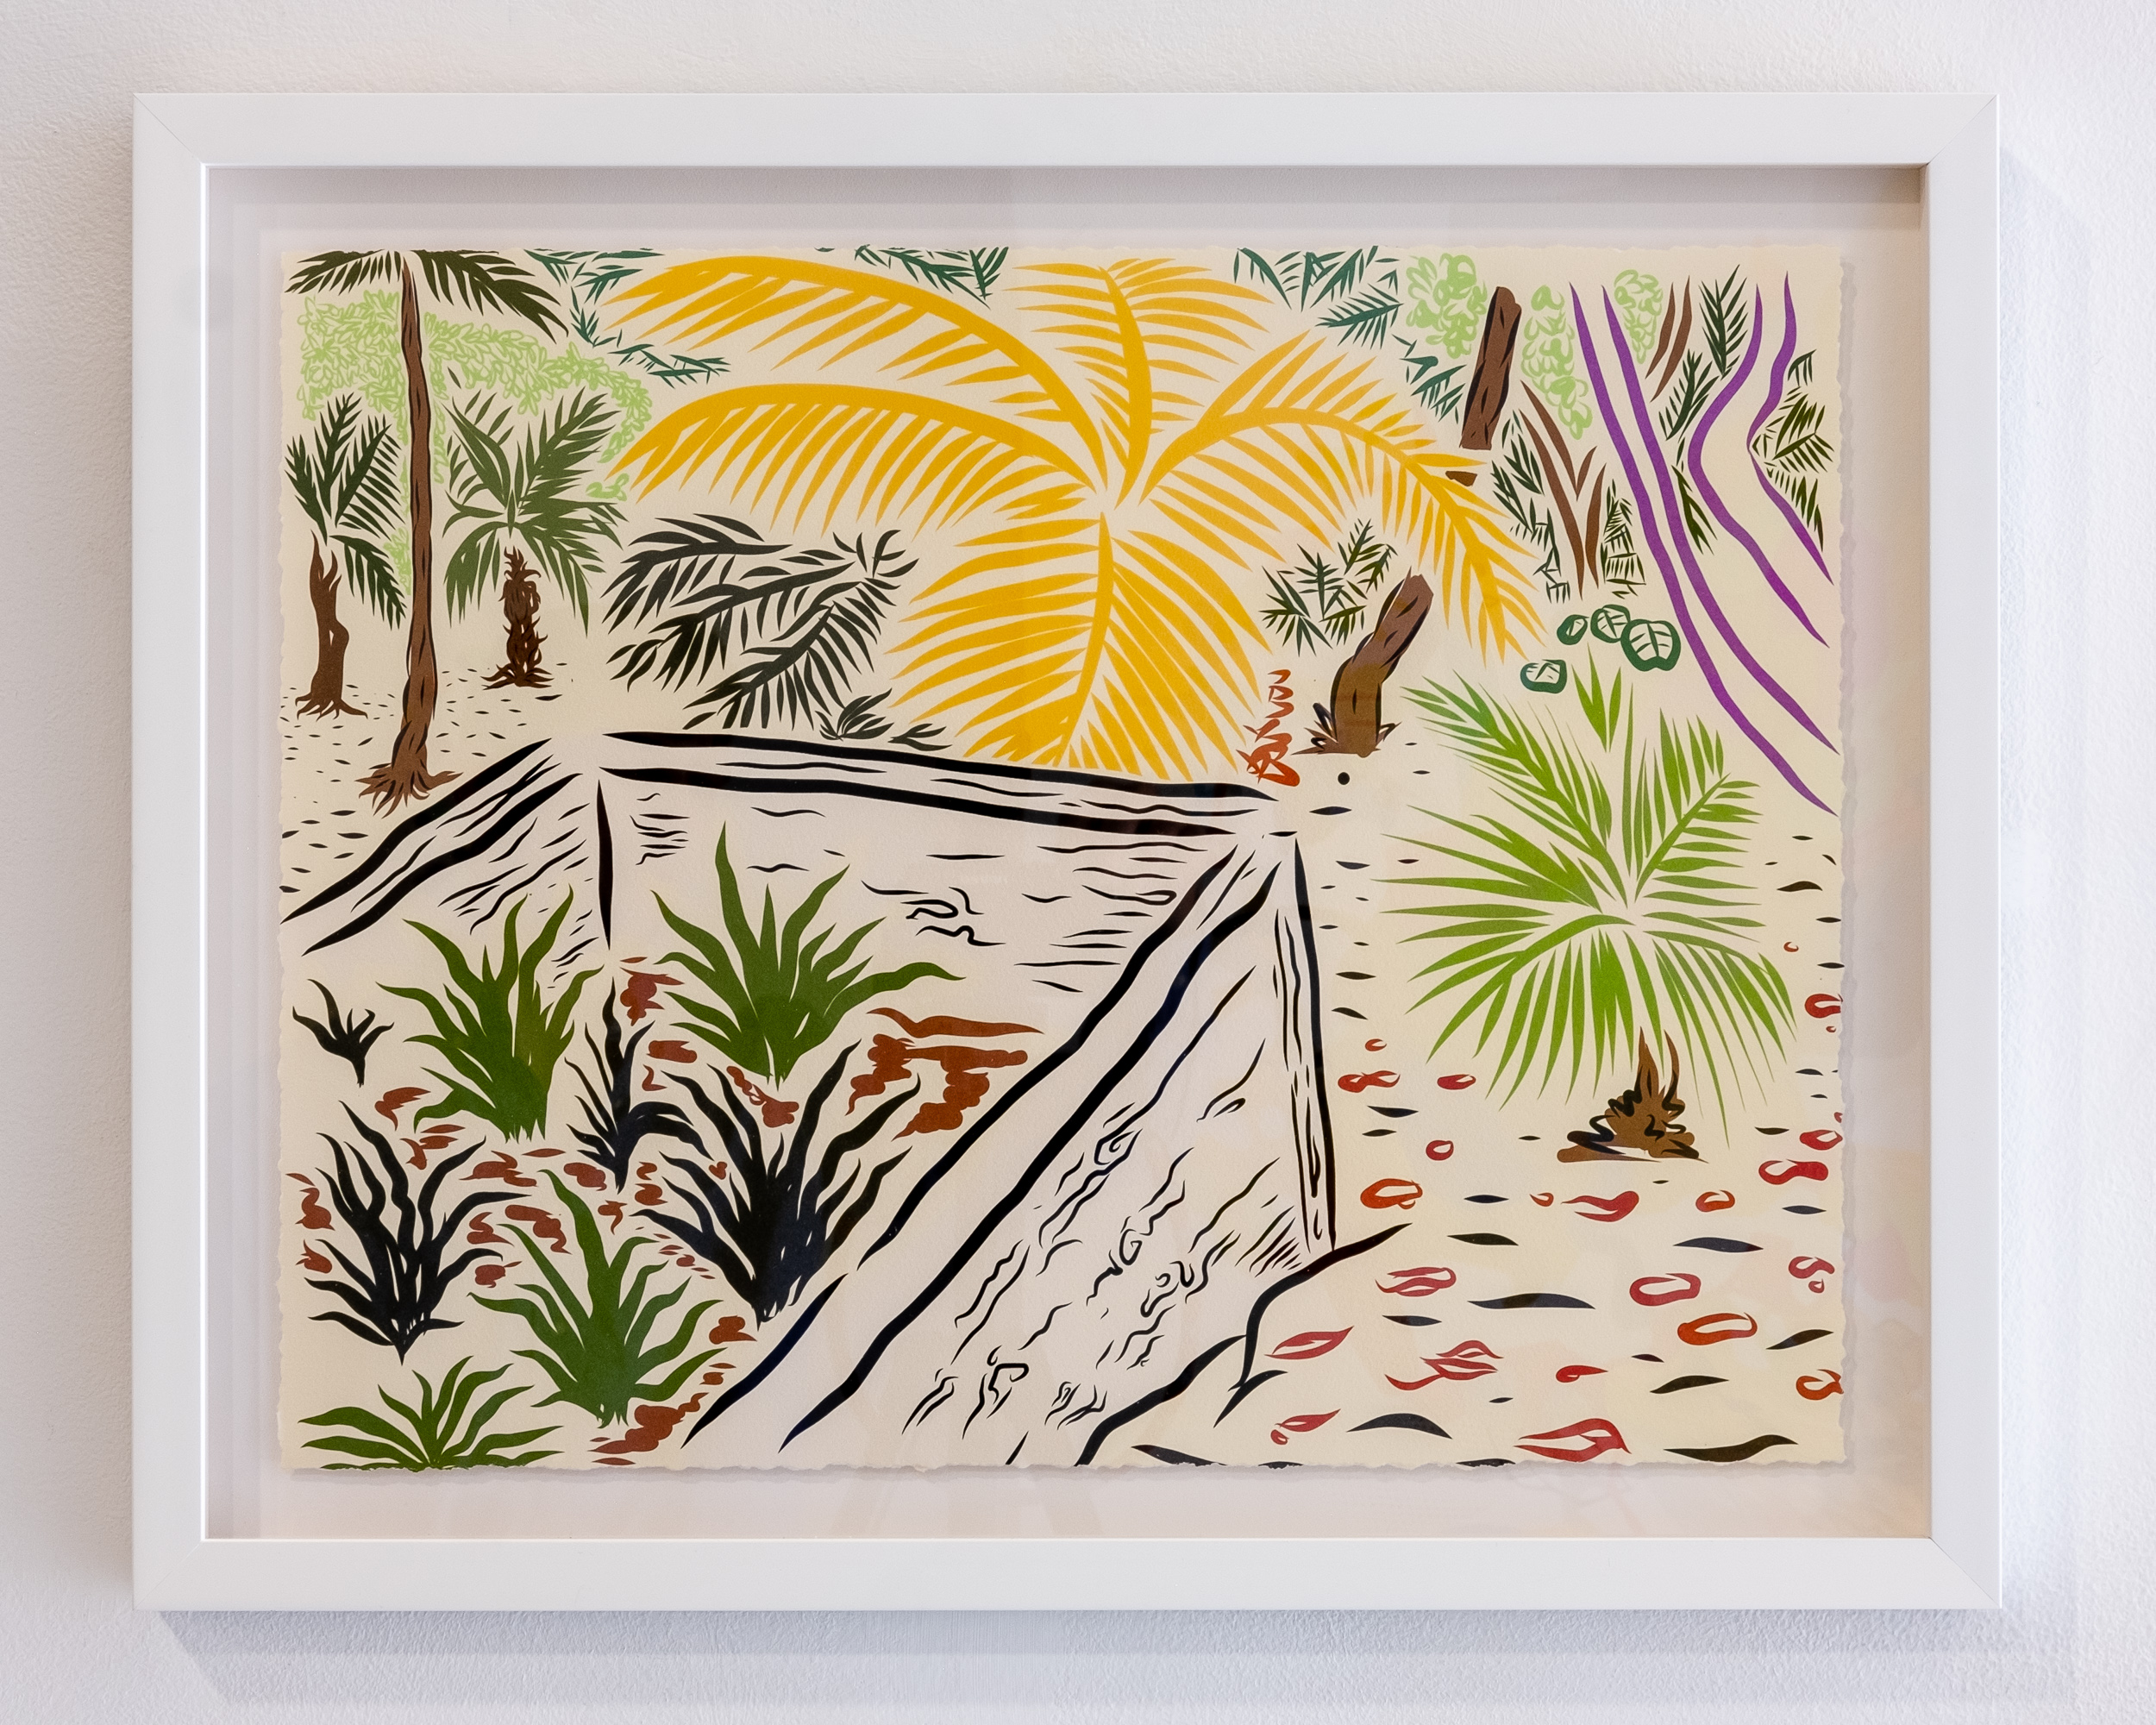 STAN CLARK   Agave Garden  inkjet on hand-tinted watercolor paper 16 x 20 inches SCL 002G